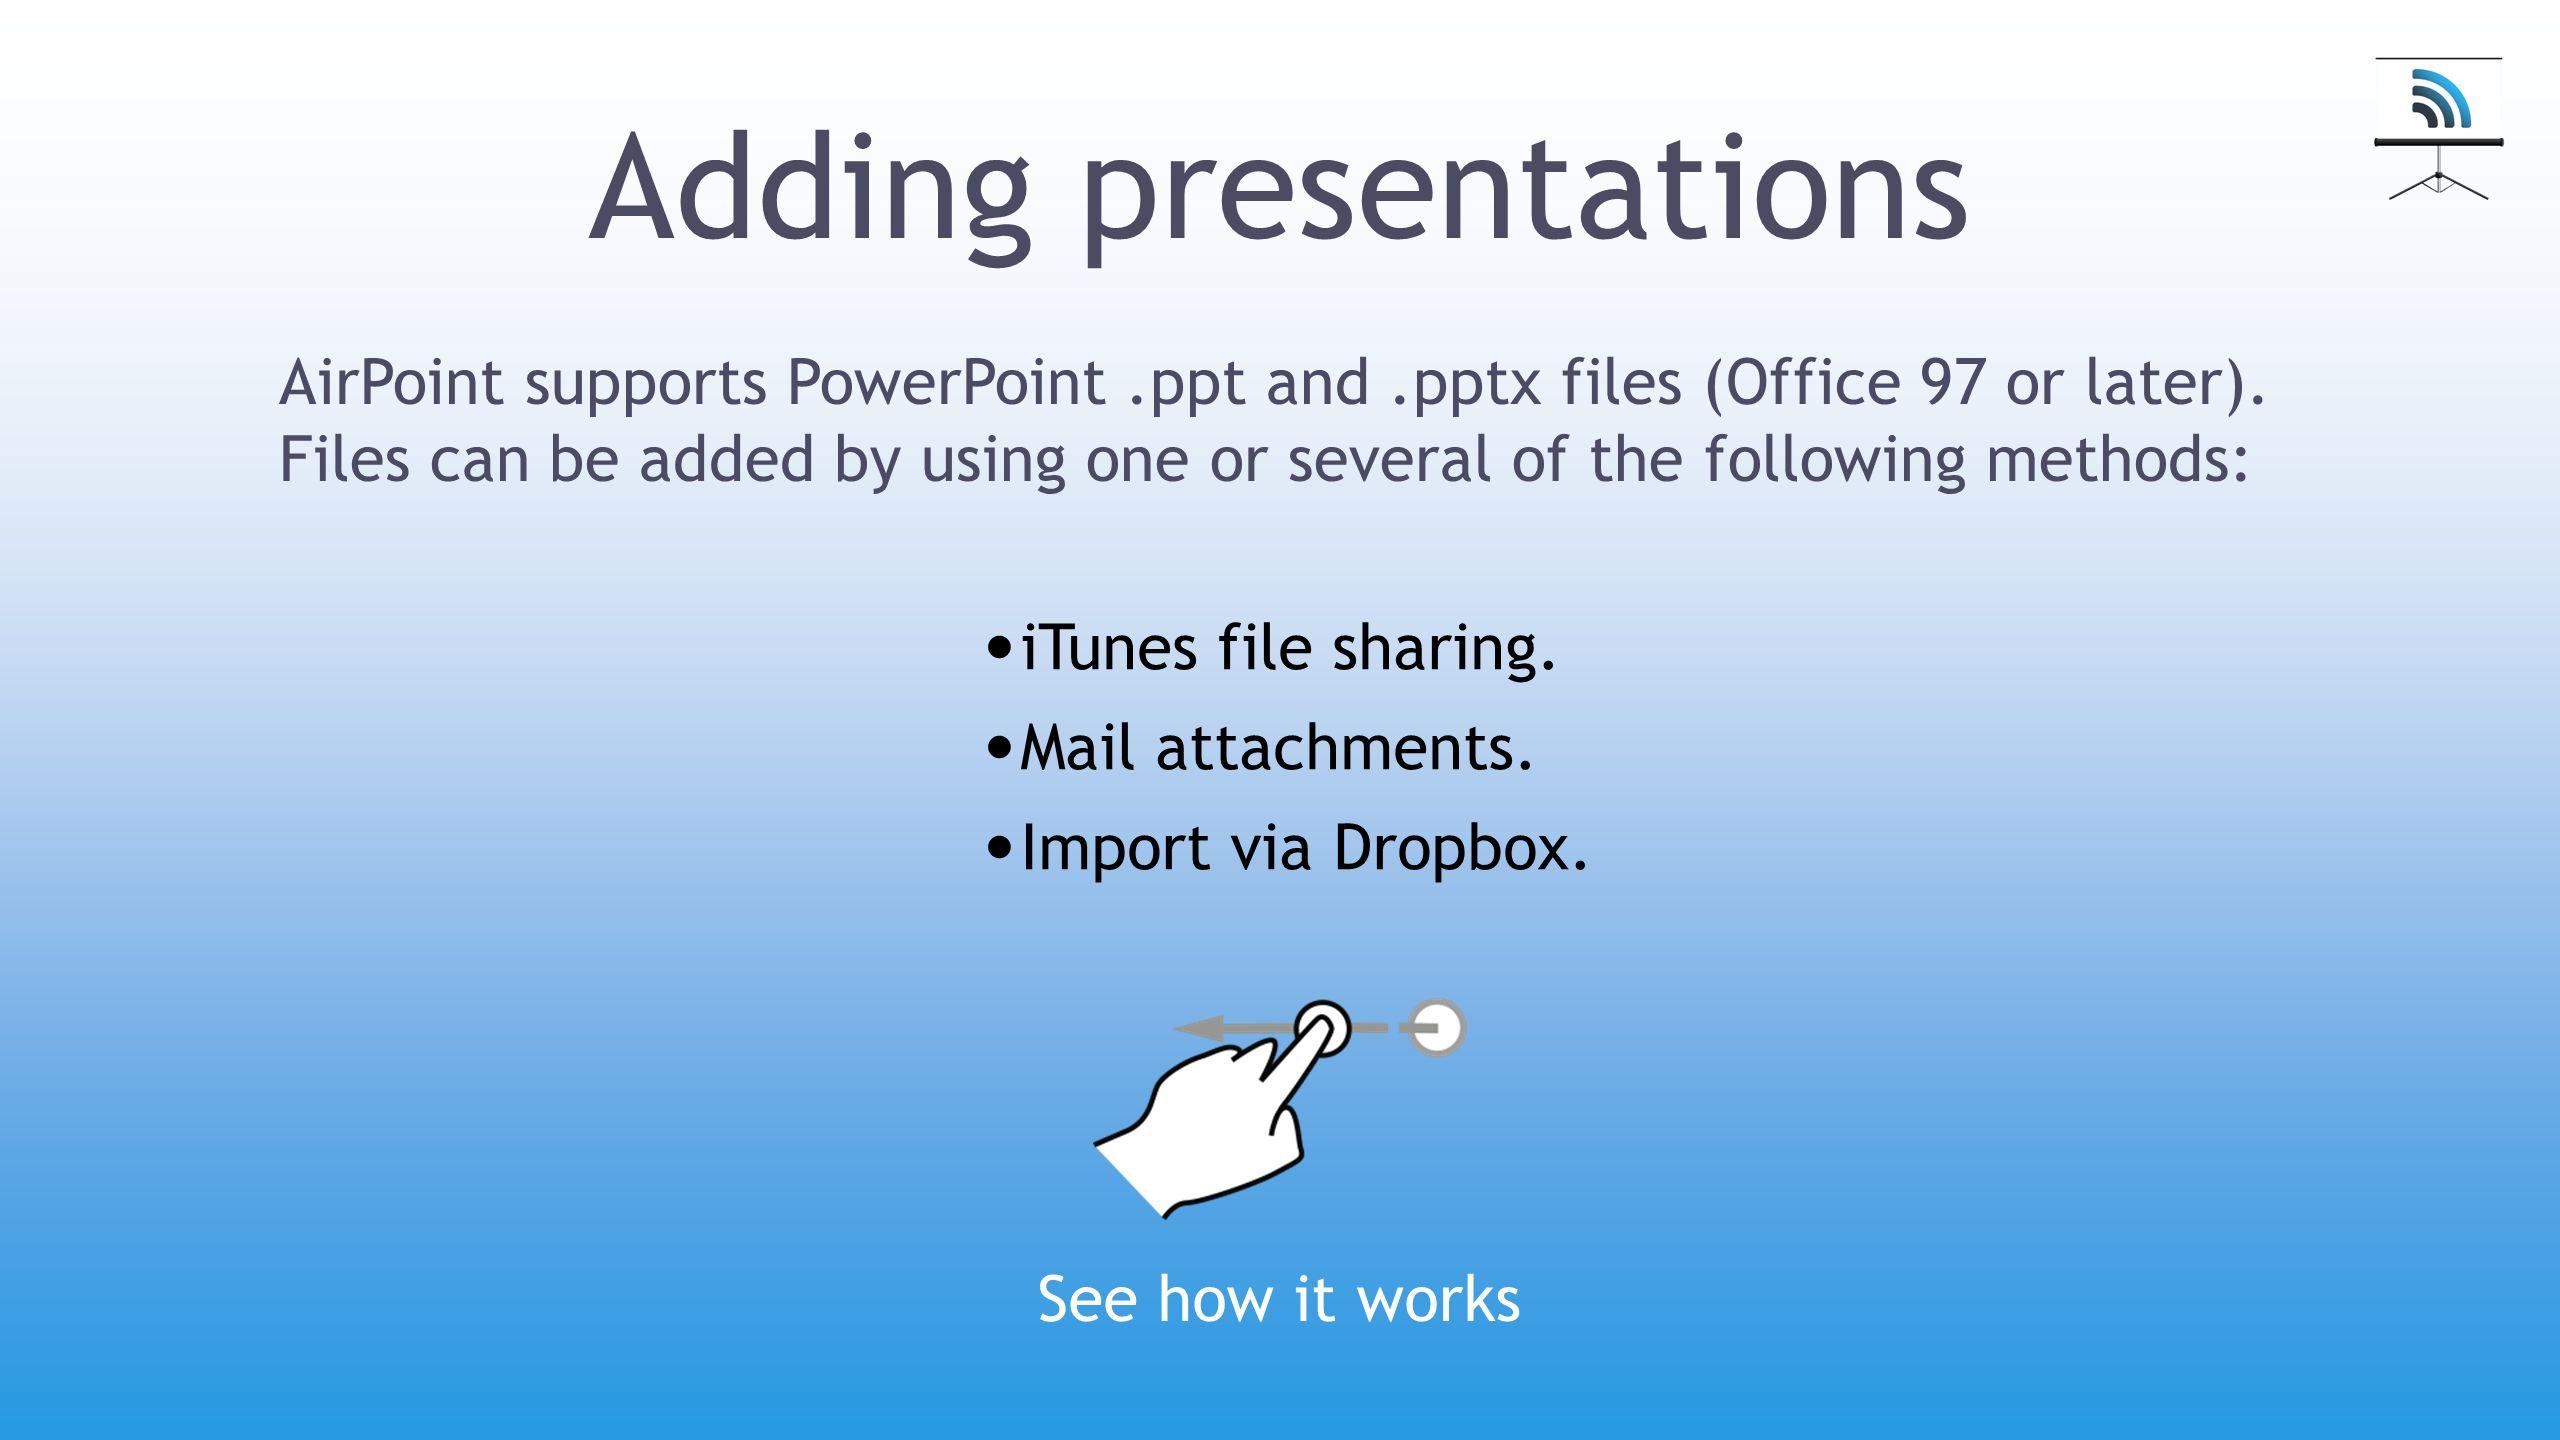 Adding presentations iTunes file sharing. Mail attachments. Import via Dropbox. AirPoint supports PowerPoint.ppt and.pptx files (Office 97 or later).